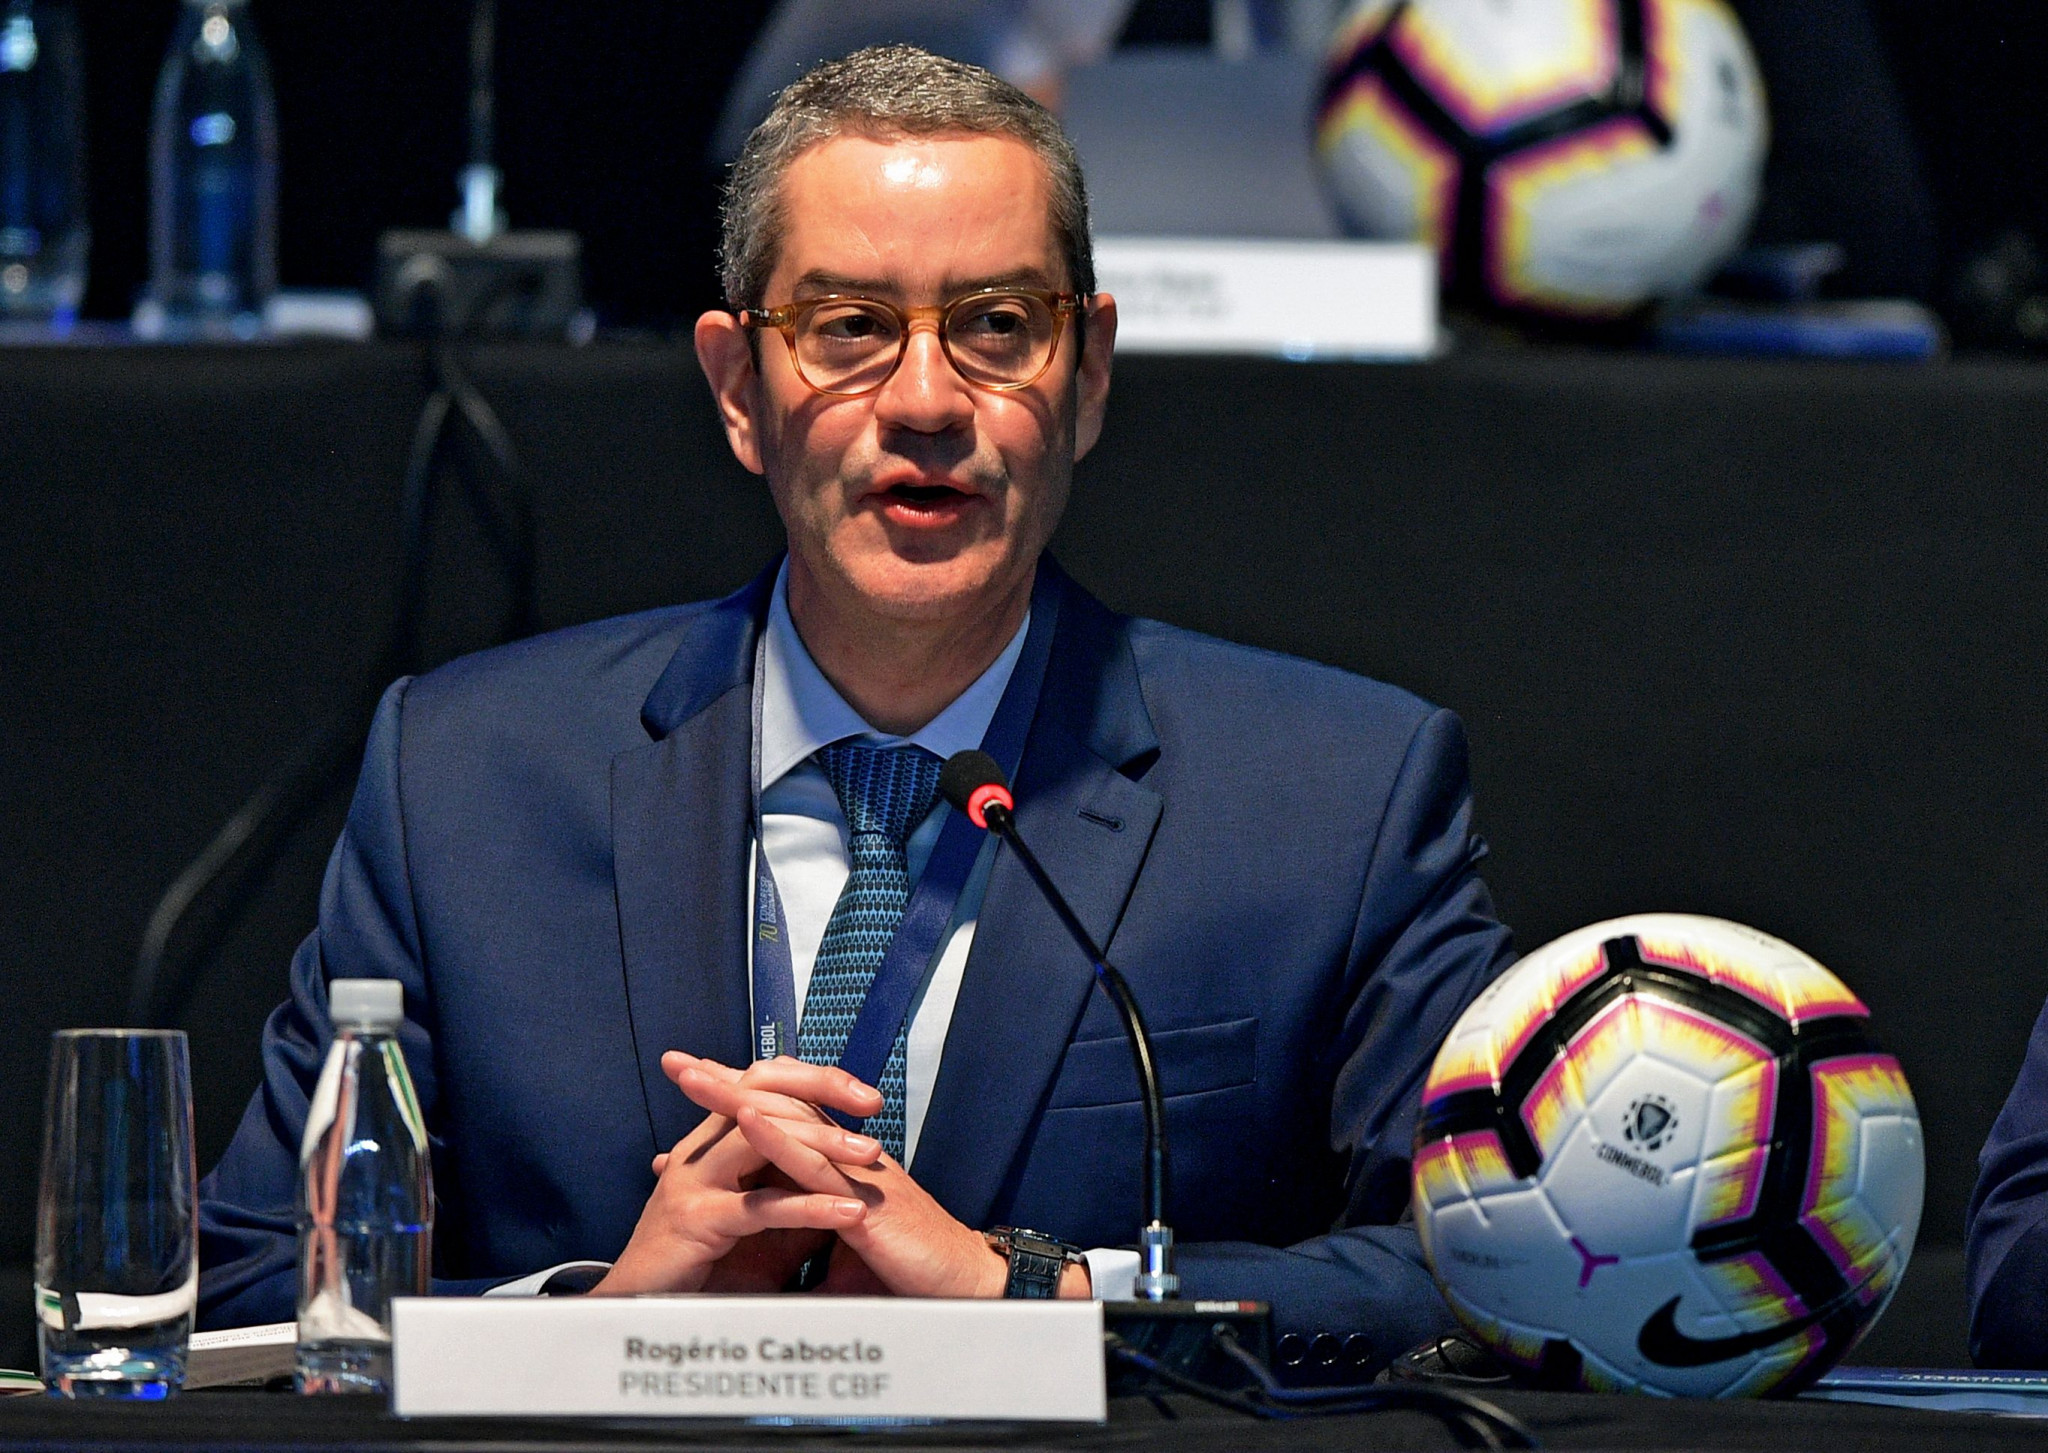 Caboclo vows to clean up Brazilian Football Confederation's act during inauguration as President